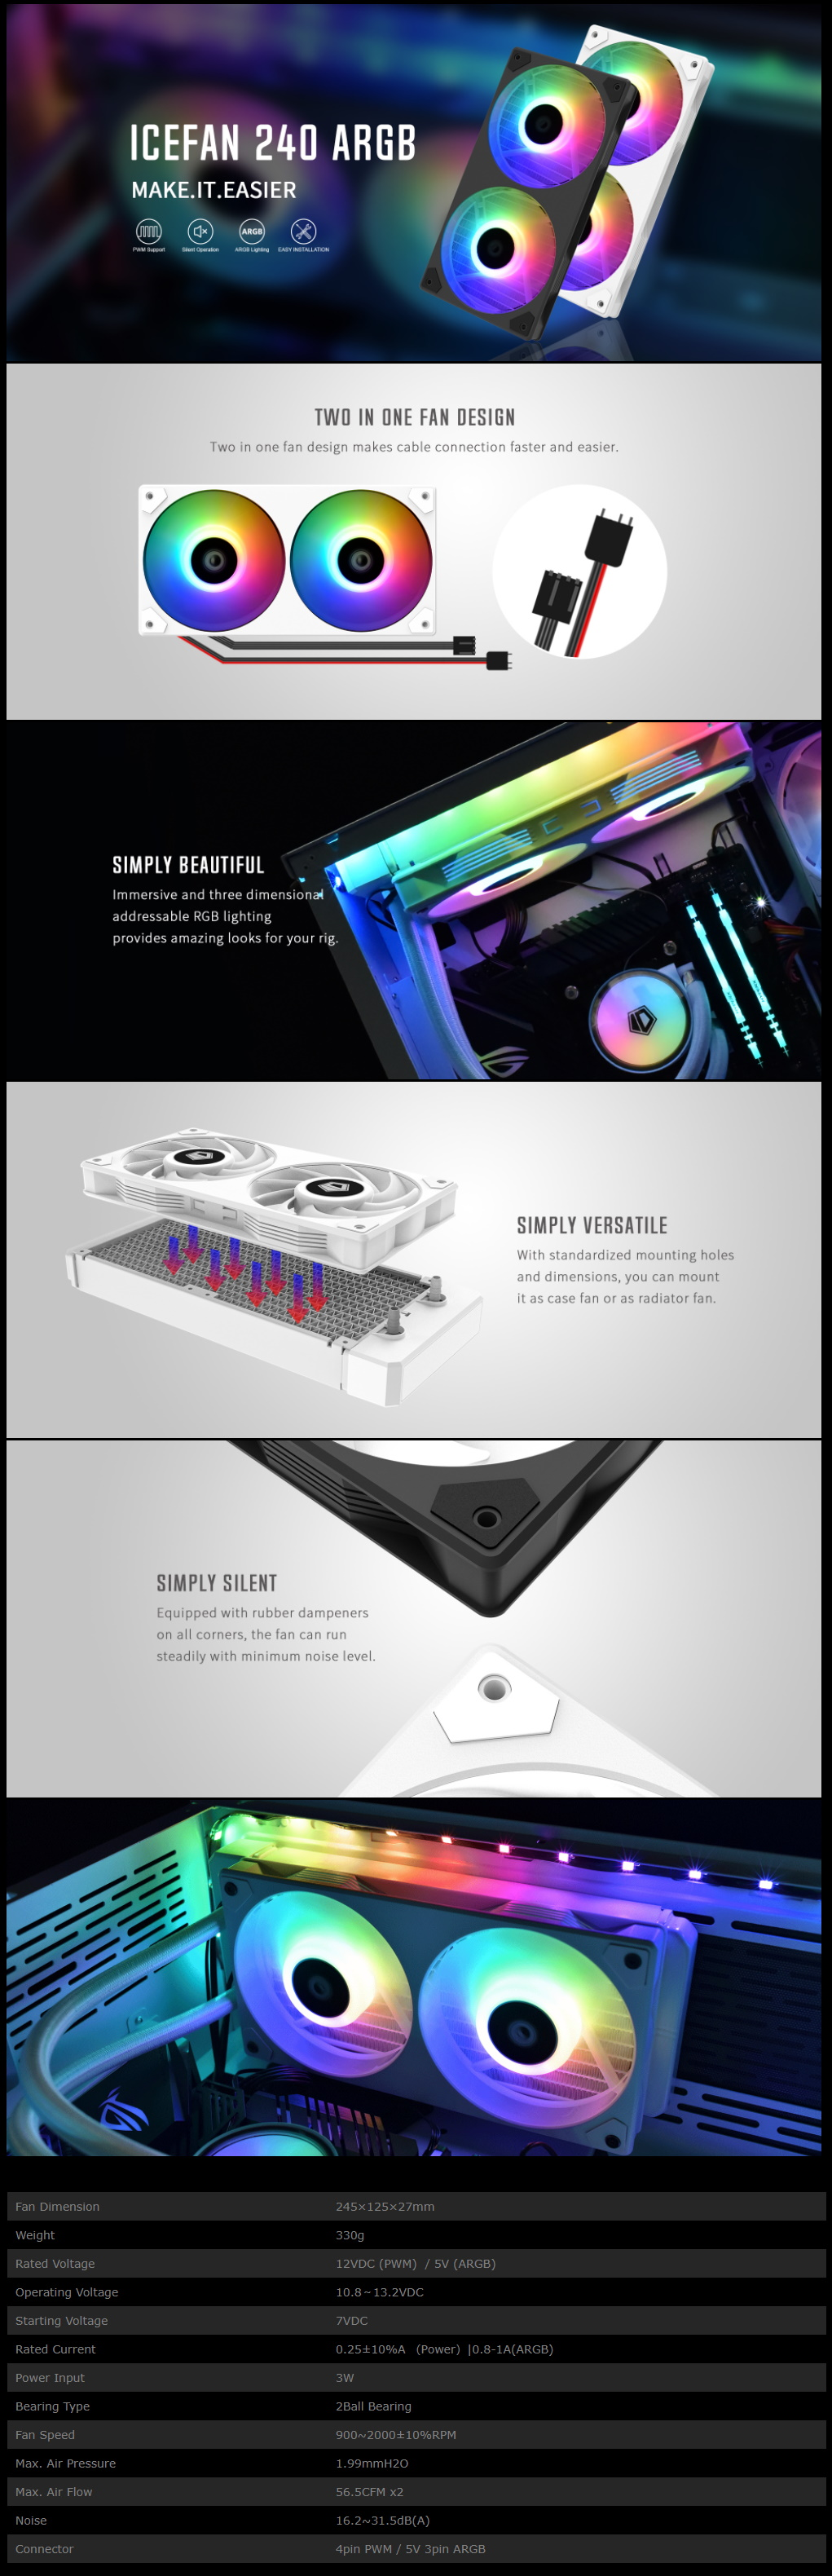 A large marketing image providing additional information about the product ID-COOLING IceFan 240 ARGB 2-in-1 Cooling Fan  - Additional alt info not provided